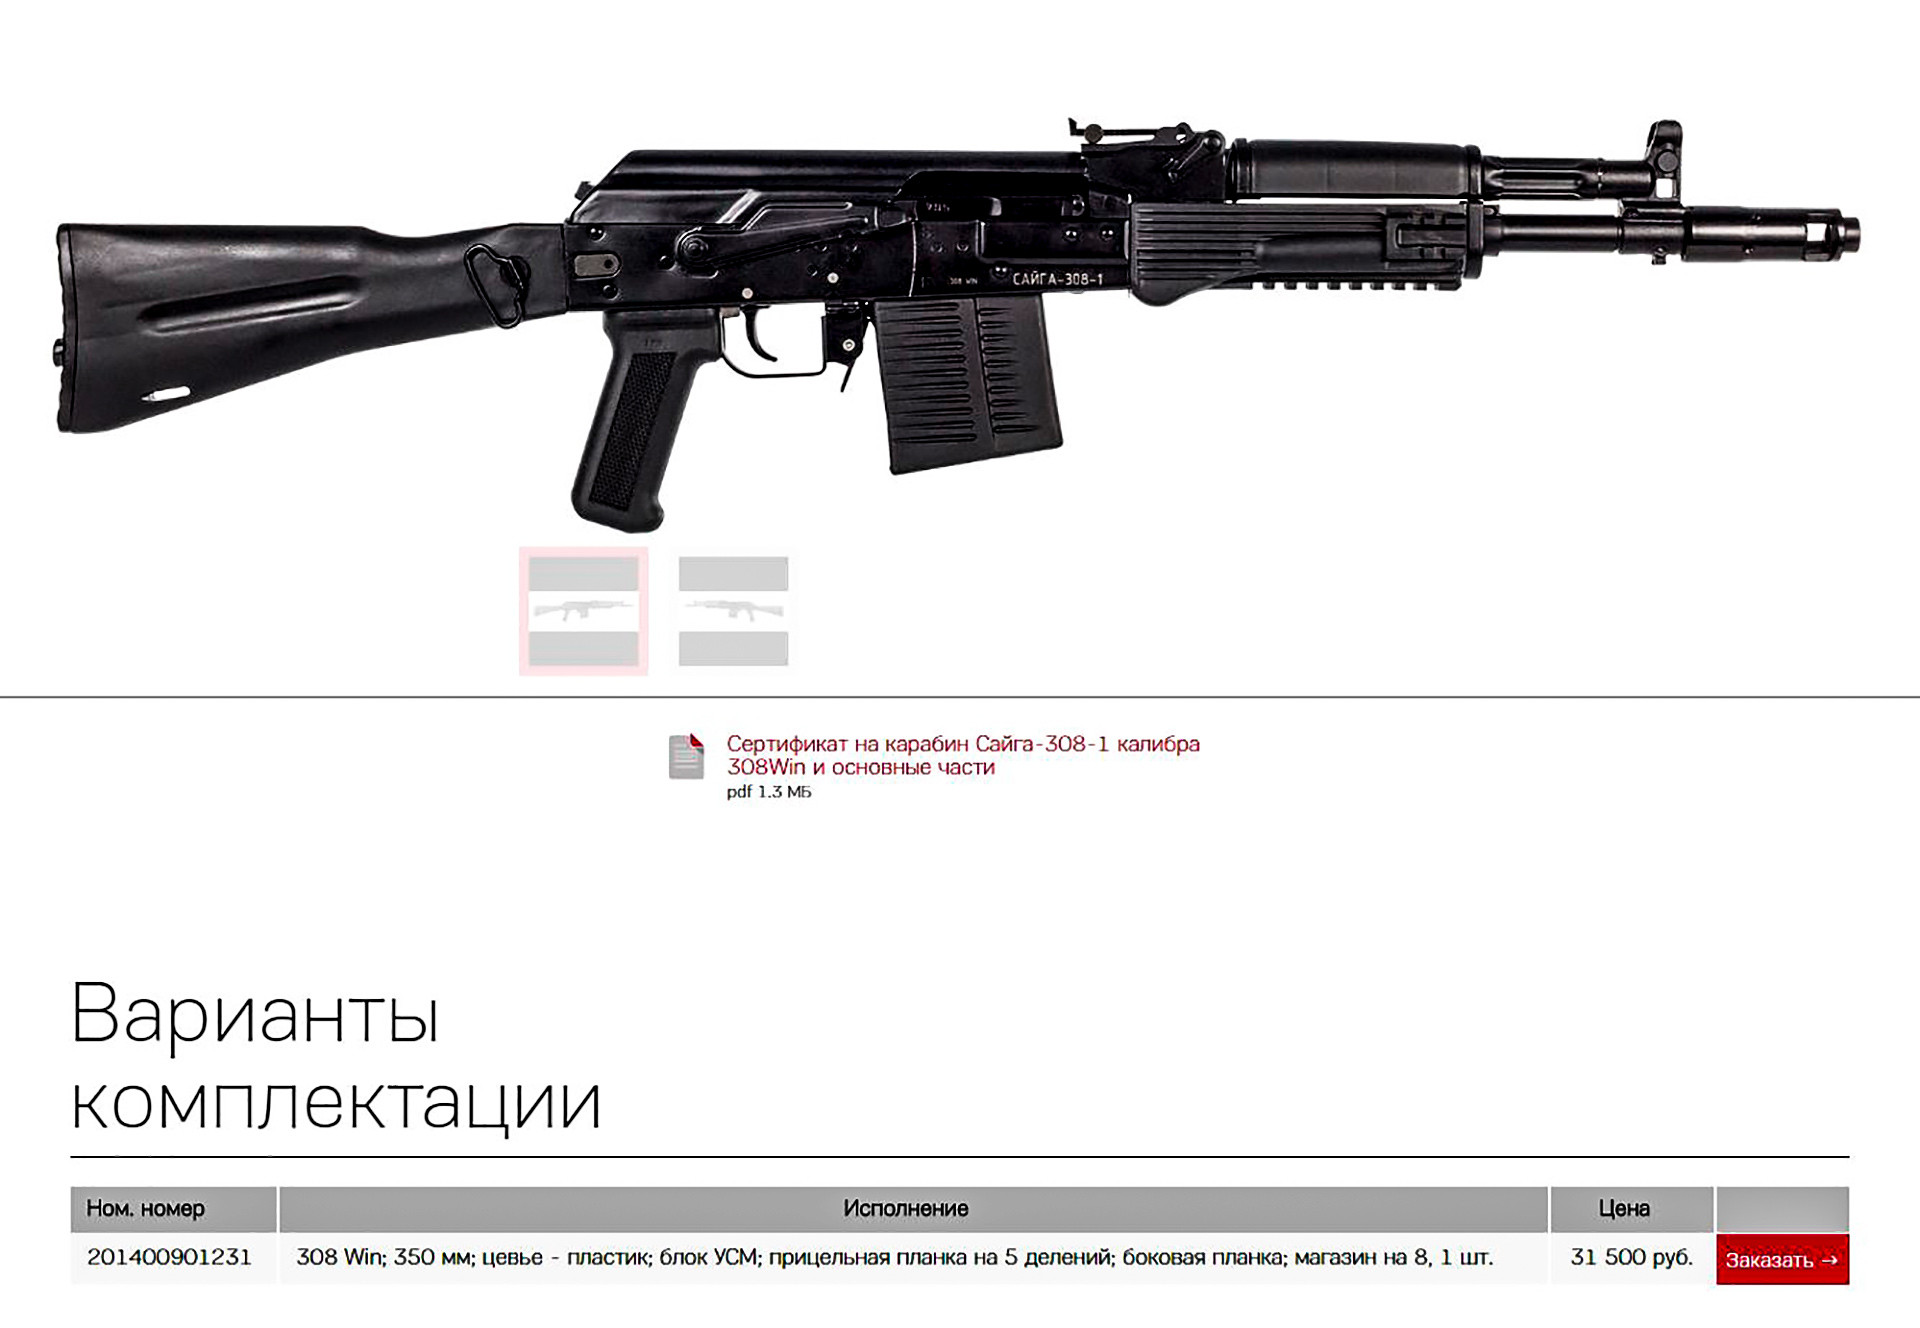 Saiga 308-1 version 46